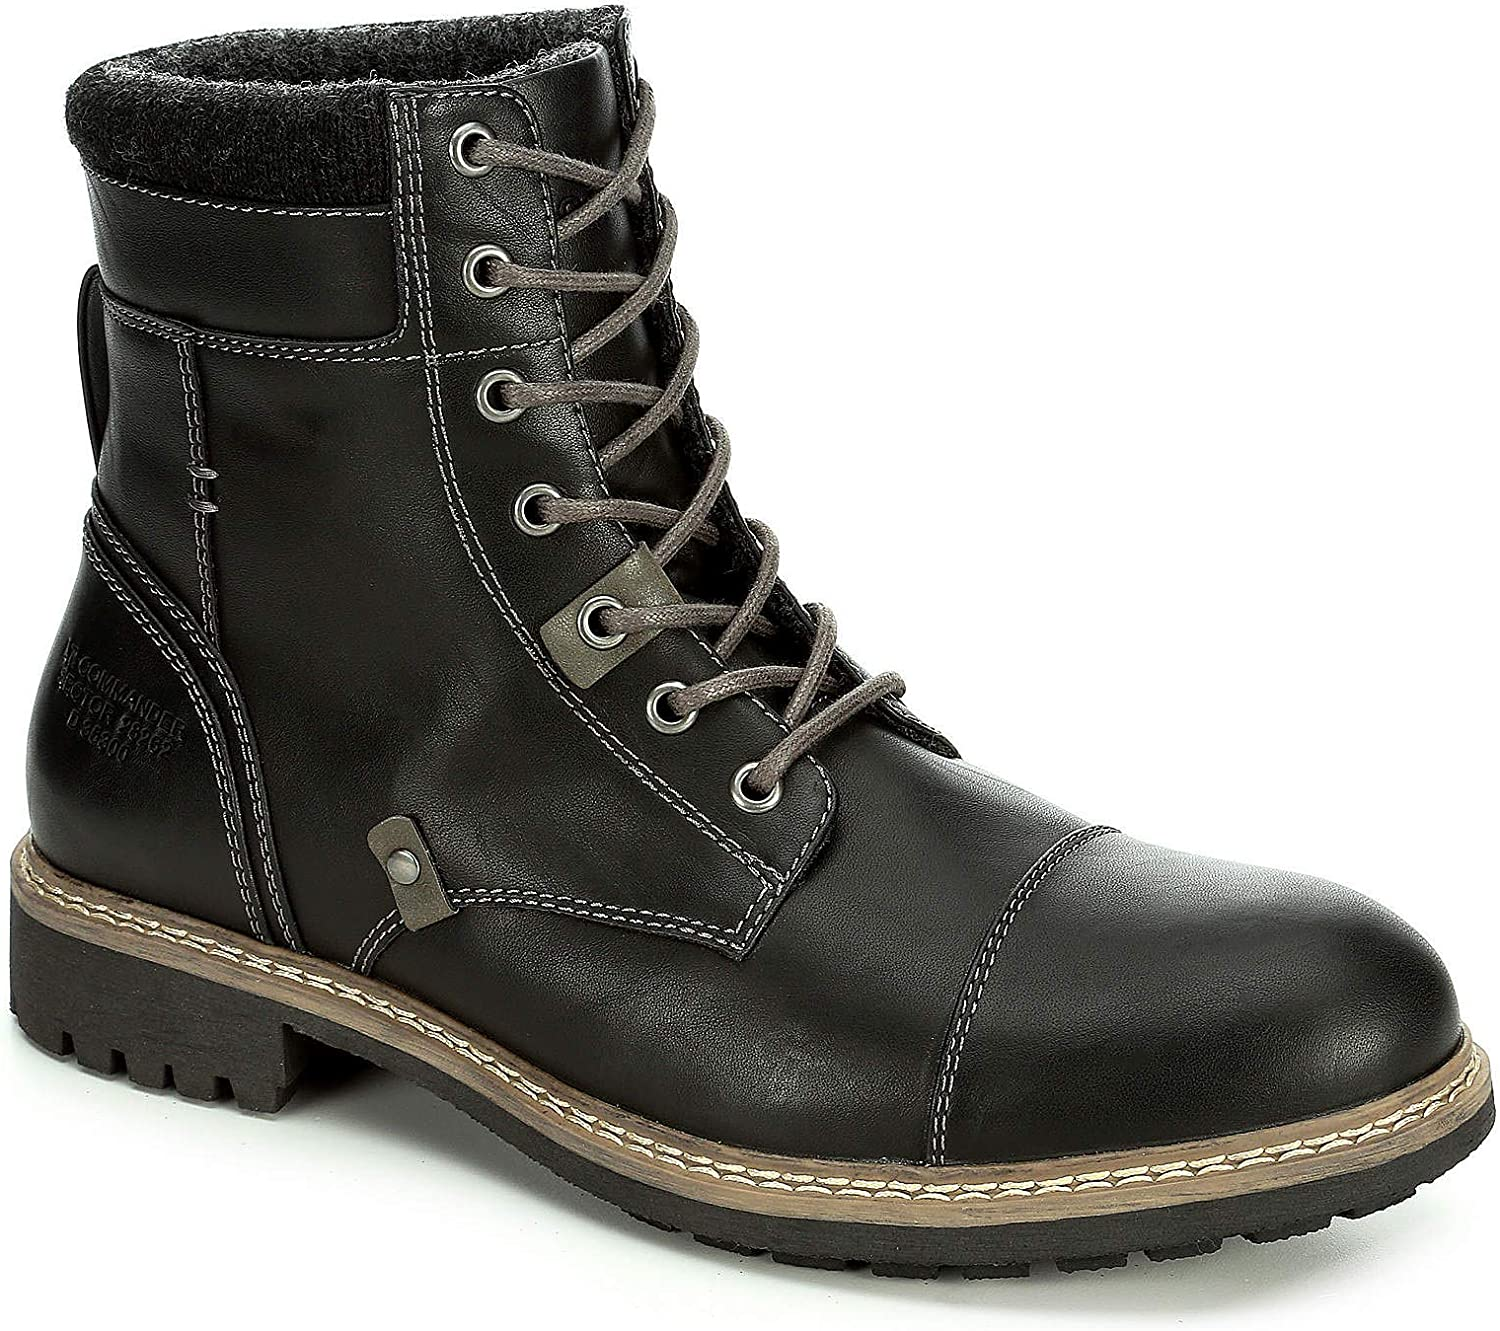 Restoration Mens Brody Lace Up Ankle Boot shoes